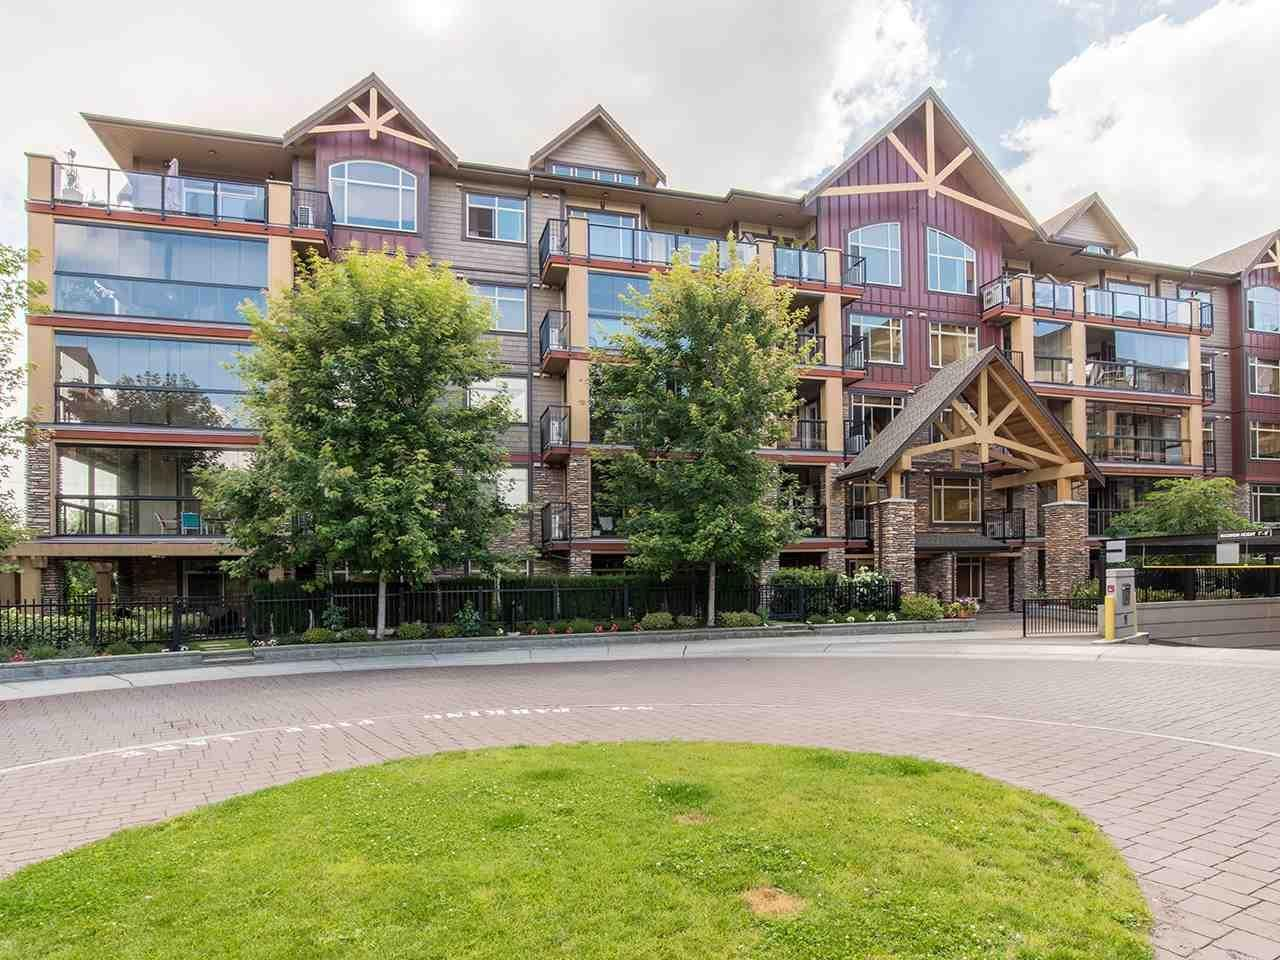 R2092381 - 281 8288 207A STREET, Willoughby Heights, Langley, BC - Apartment Unit